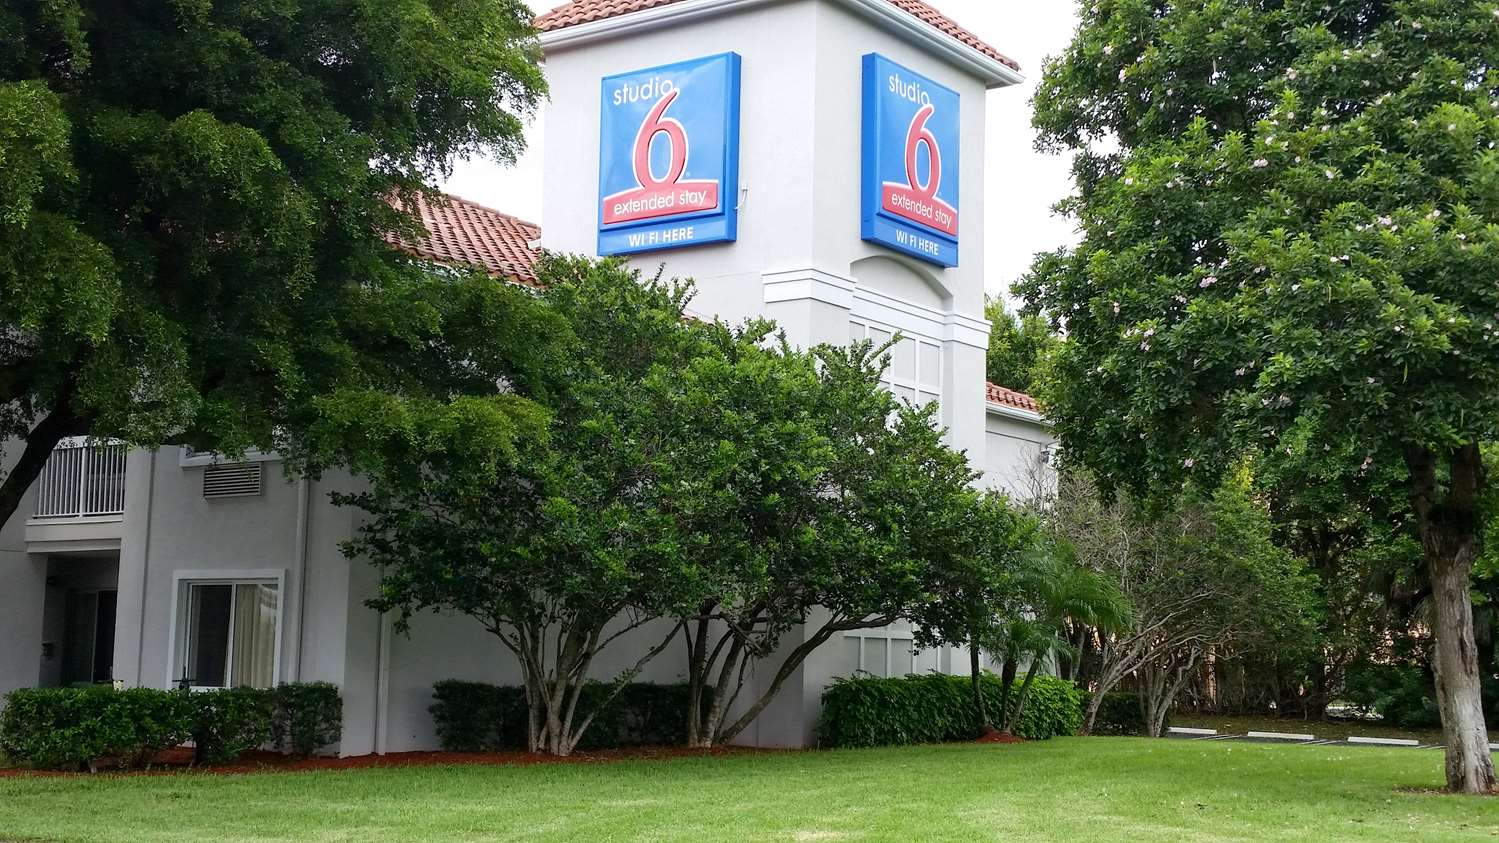 Studio 6 Extended Stay Hotel North West Palm Beach, FL - See Discounts